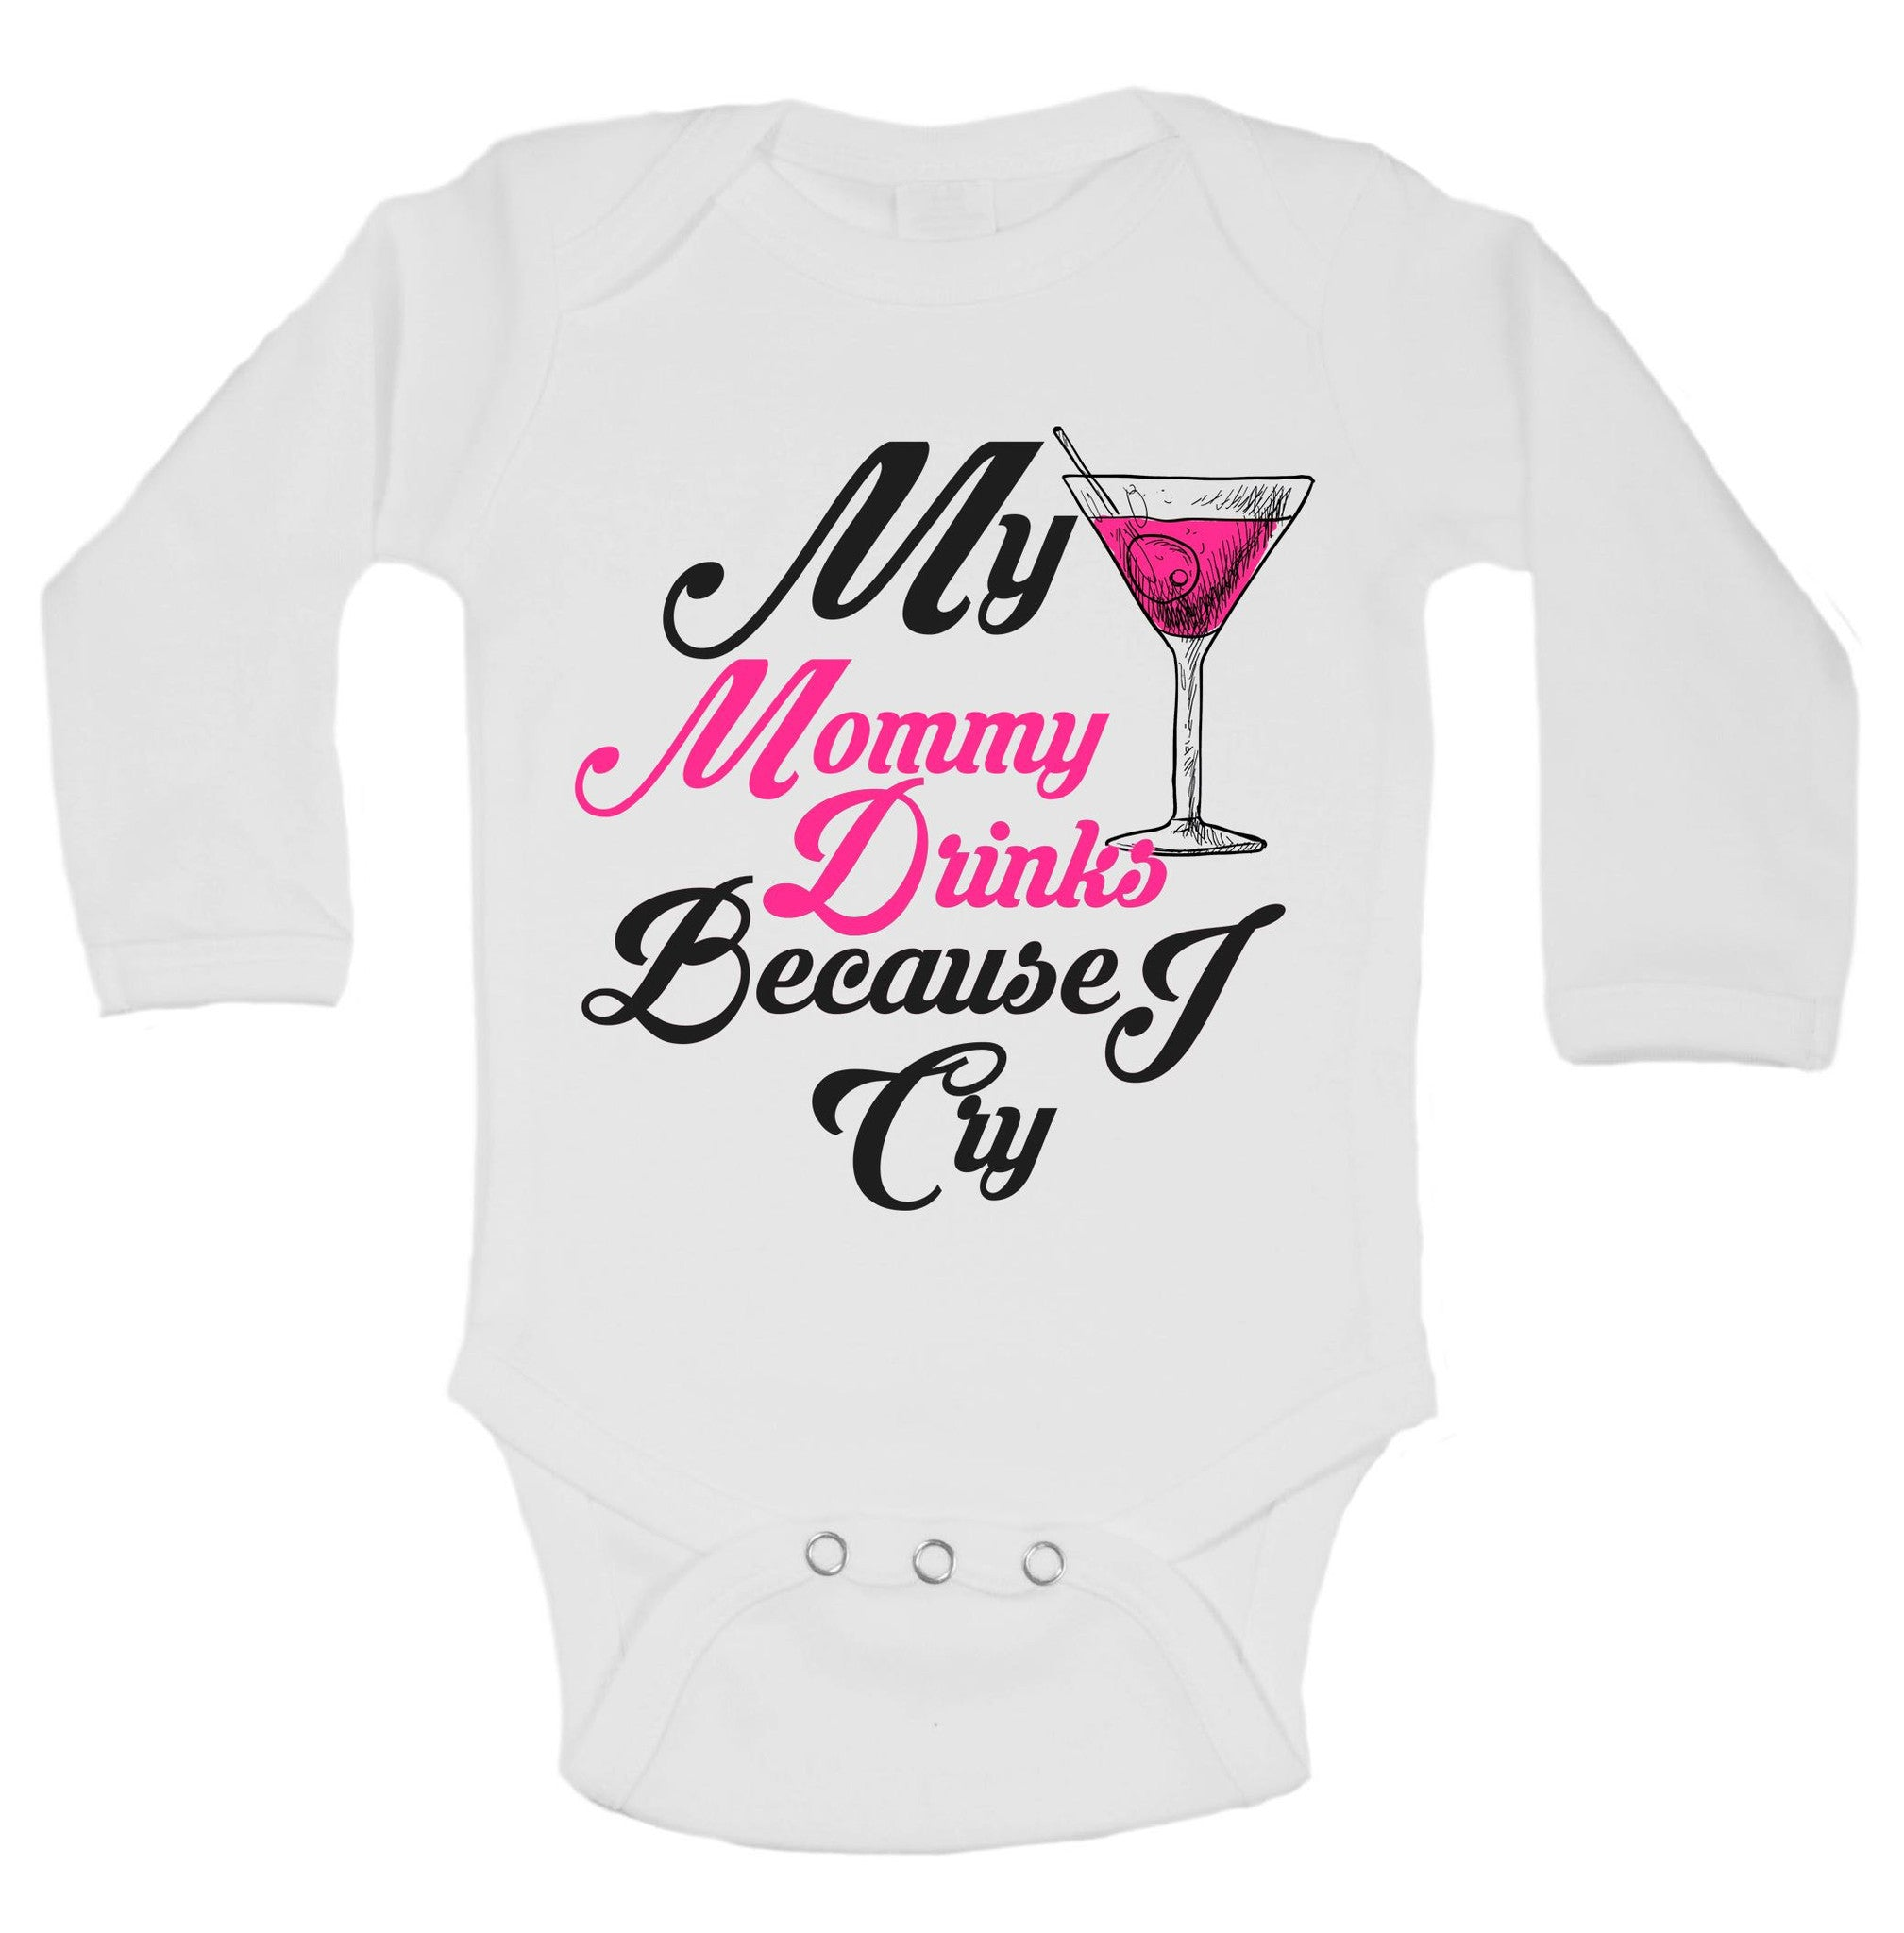 My Mommy Drinks Because I Cry Funny Kids Onesie - B140 - Funny Shirts Tank Tops Burnouts and Triblends  - 1